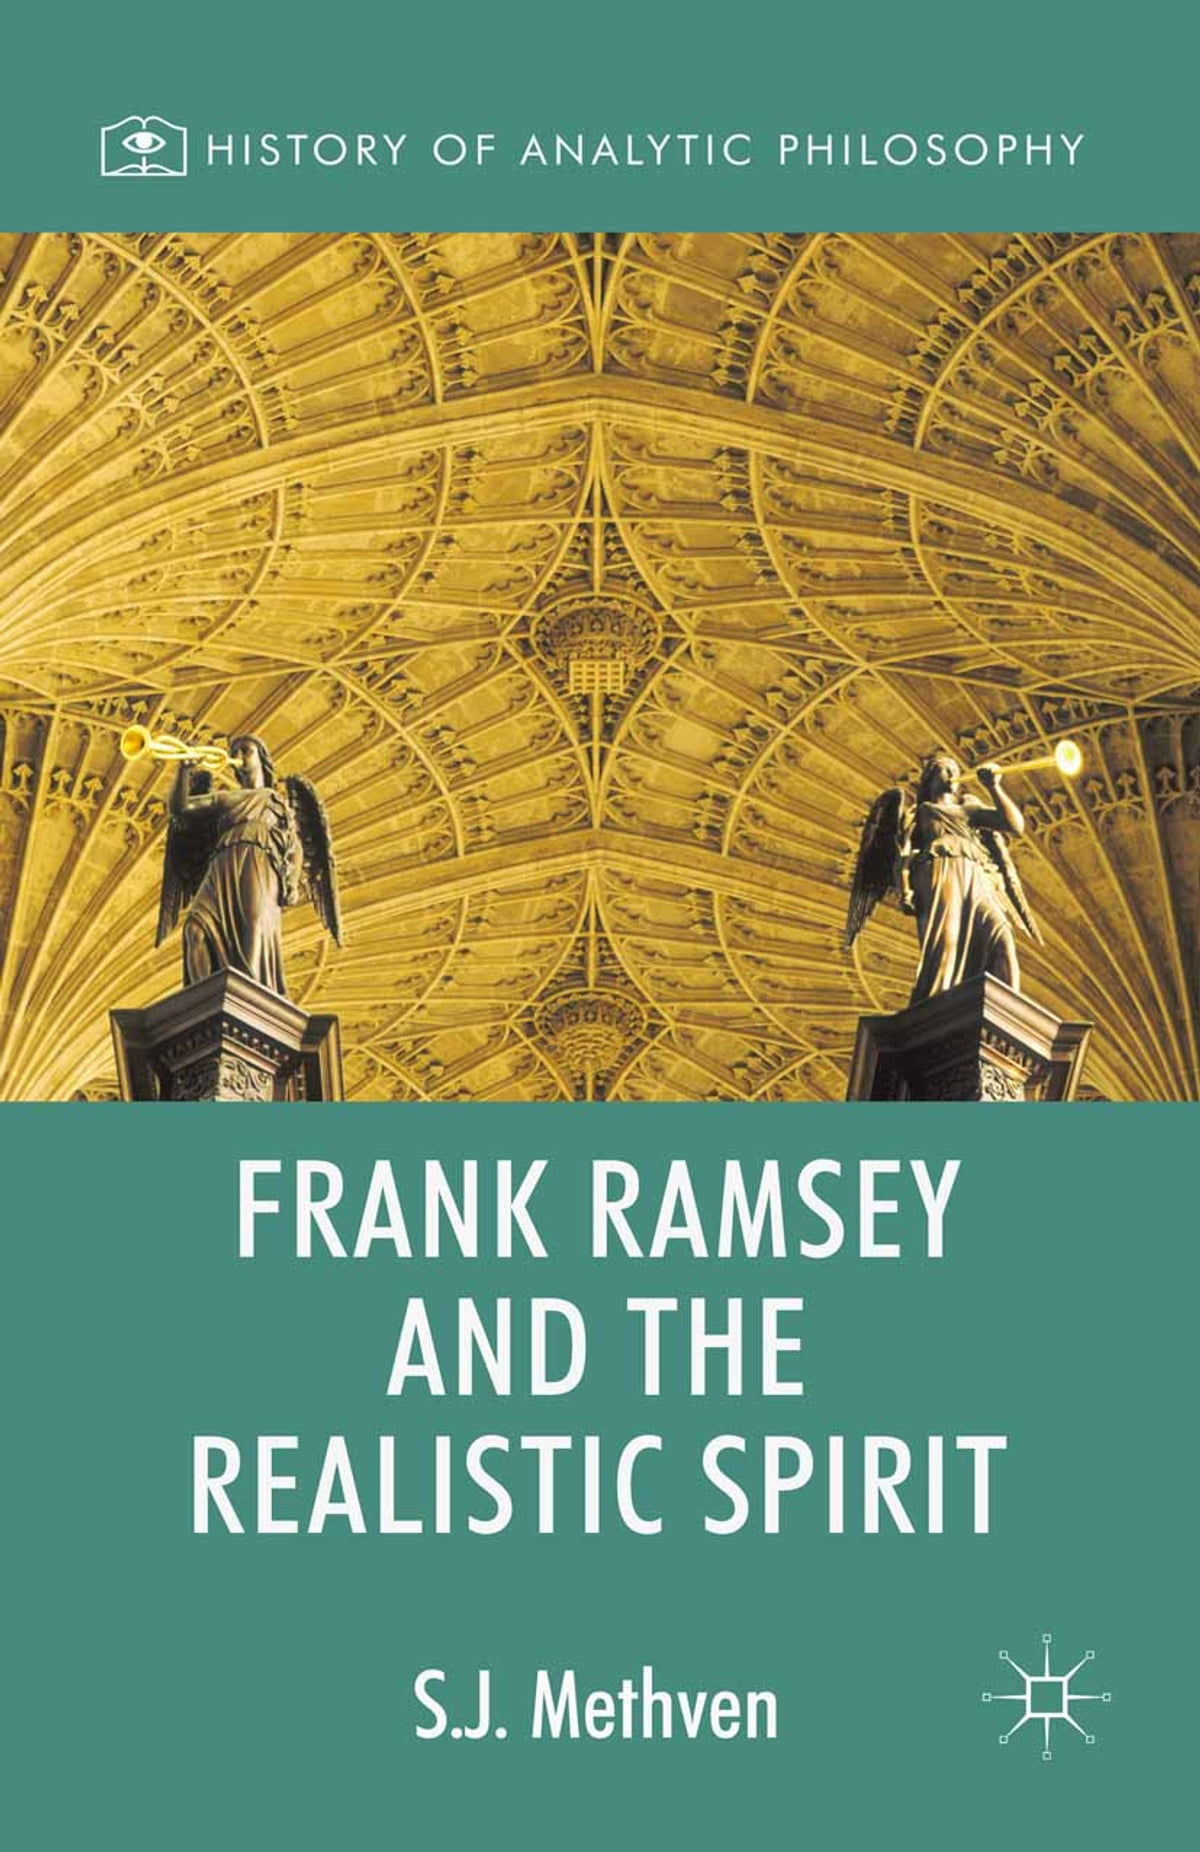 Frank Ramsey and the Realistic Spirit eBook by Steven Methven